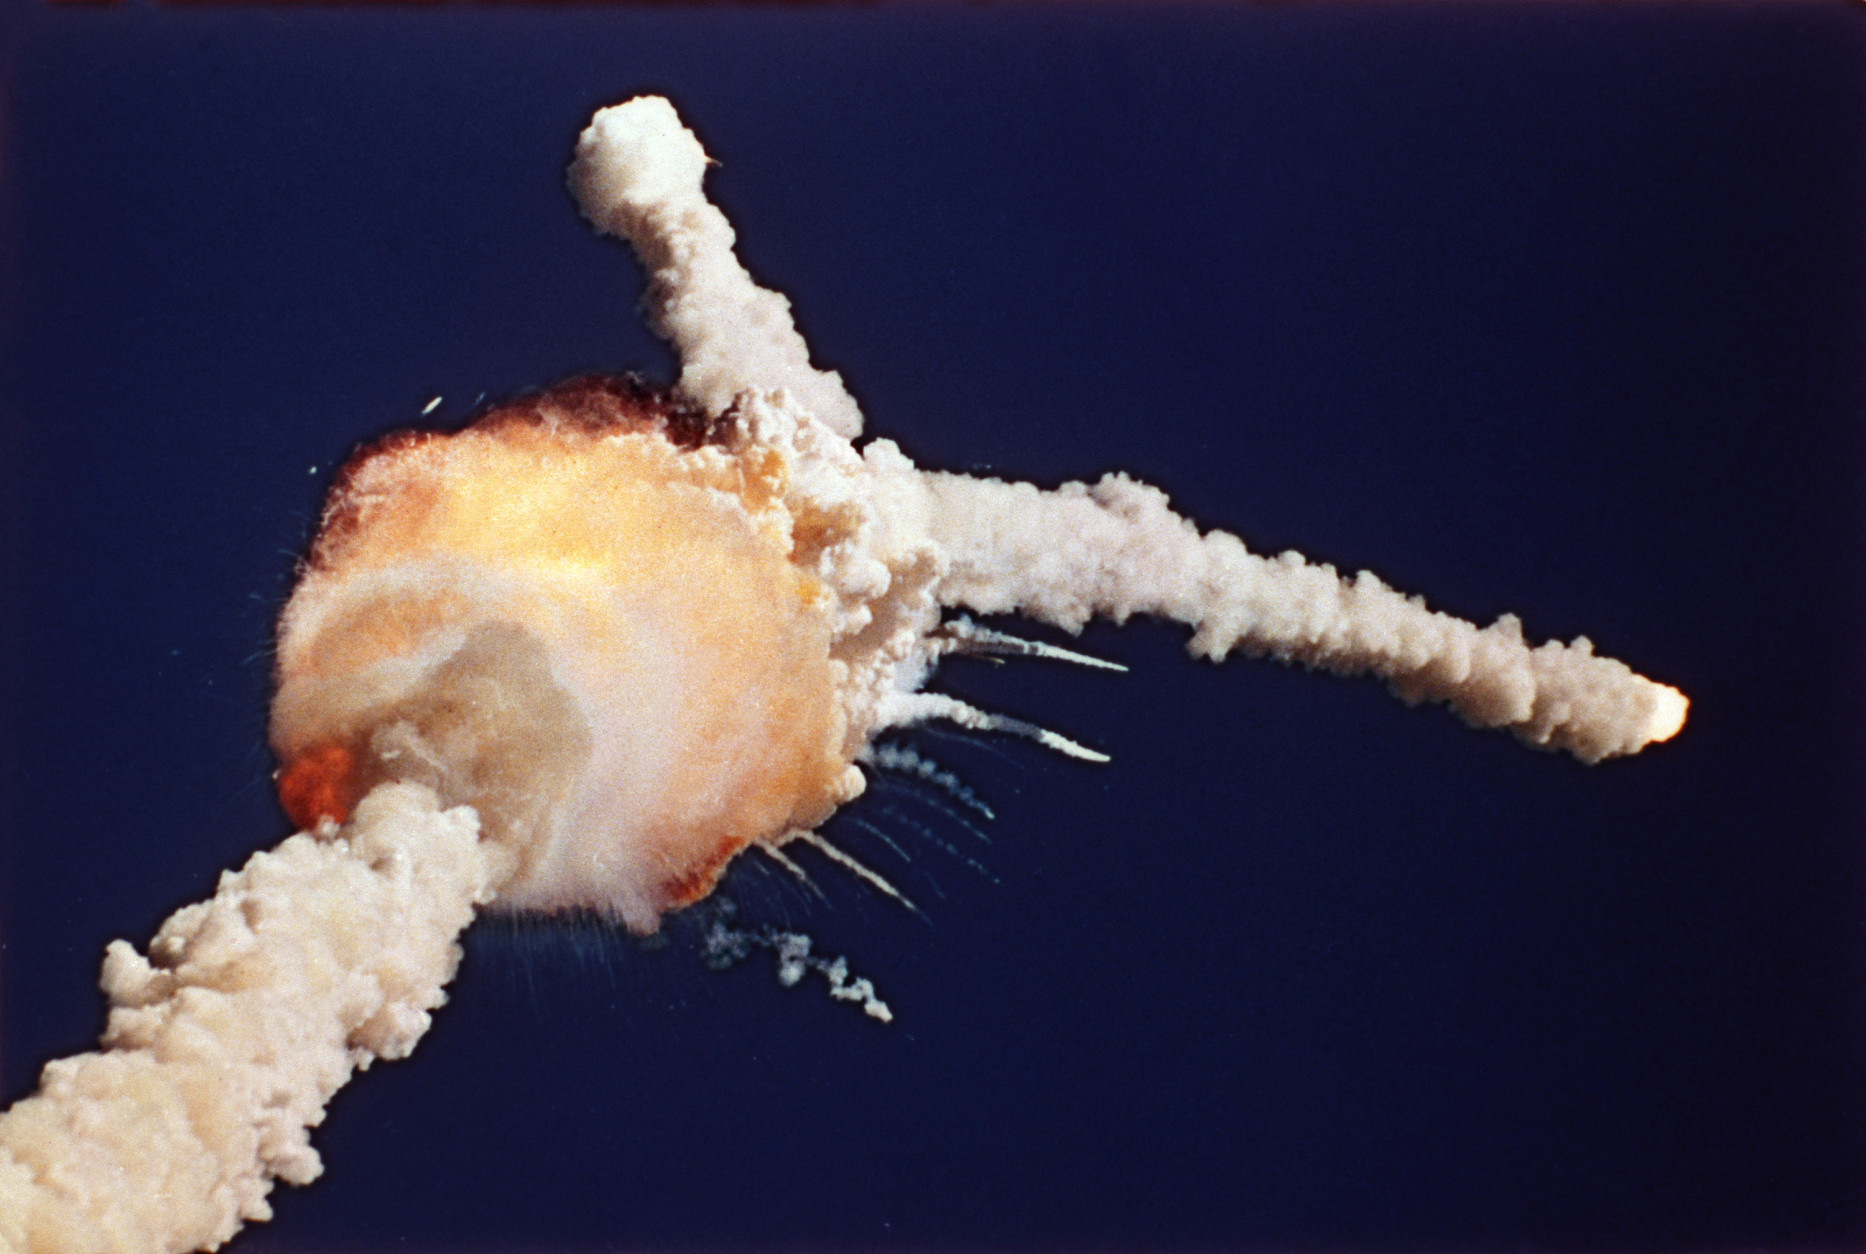 FILE - In this Jan. 28, 1986 file photo, the Space Shuttle Challenger explodes shortly after lifting off from Kennedy Space Center, in Fla. All seven crew members died in the explosion, which was blamed on faulty o-rings in the shuttle's booster rockets. Bob Ebeling had spent three decades filled with guilt over not stopping the explosion of Challenger, but found relief in the weeks before his death Monday, March 21, 2016, at age 89. NPR reports Ebeling had been a booster rocket engineer at a NASA contractor during the launch. He tried to convince them to postpone it, saying the cold temperatures could cause the shuttle to explode. (AP Photo/Bruce Weaver, File)